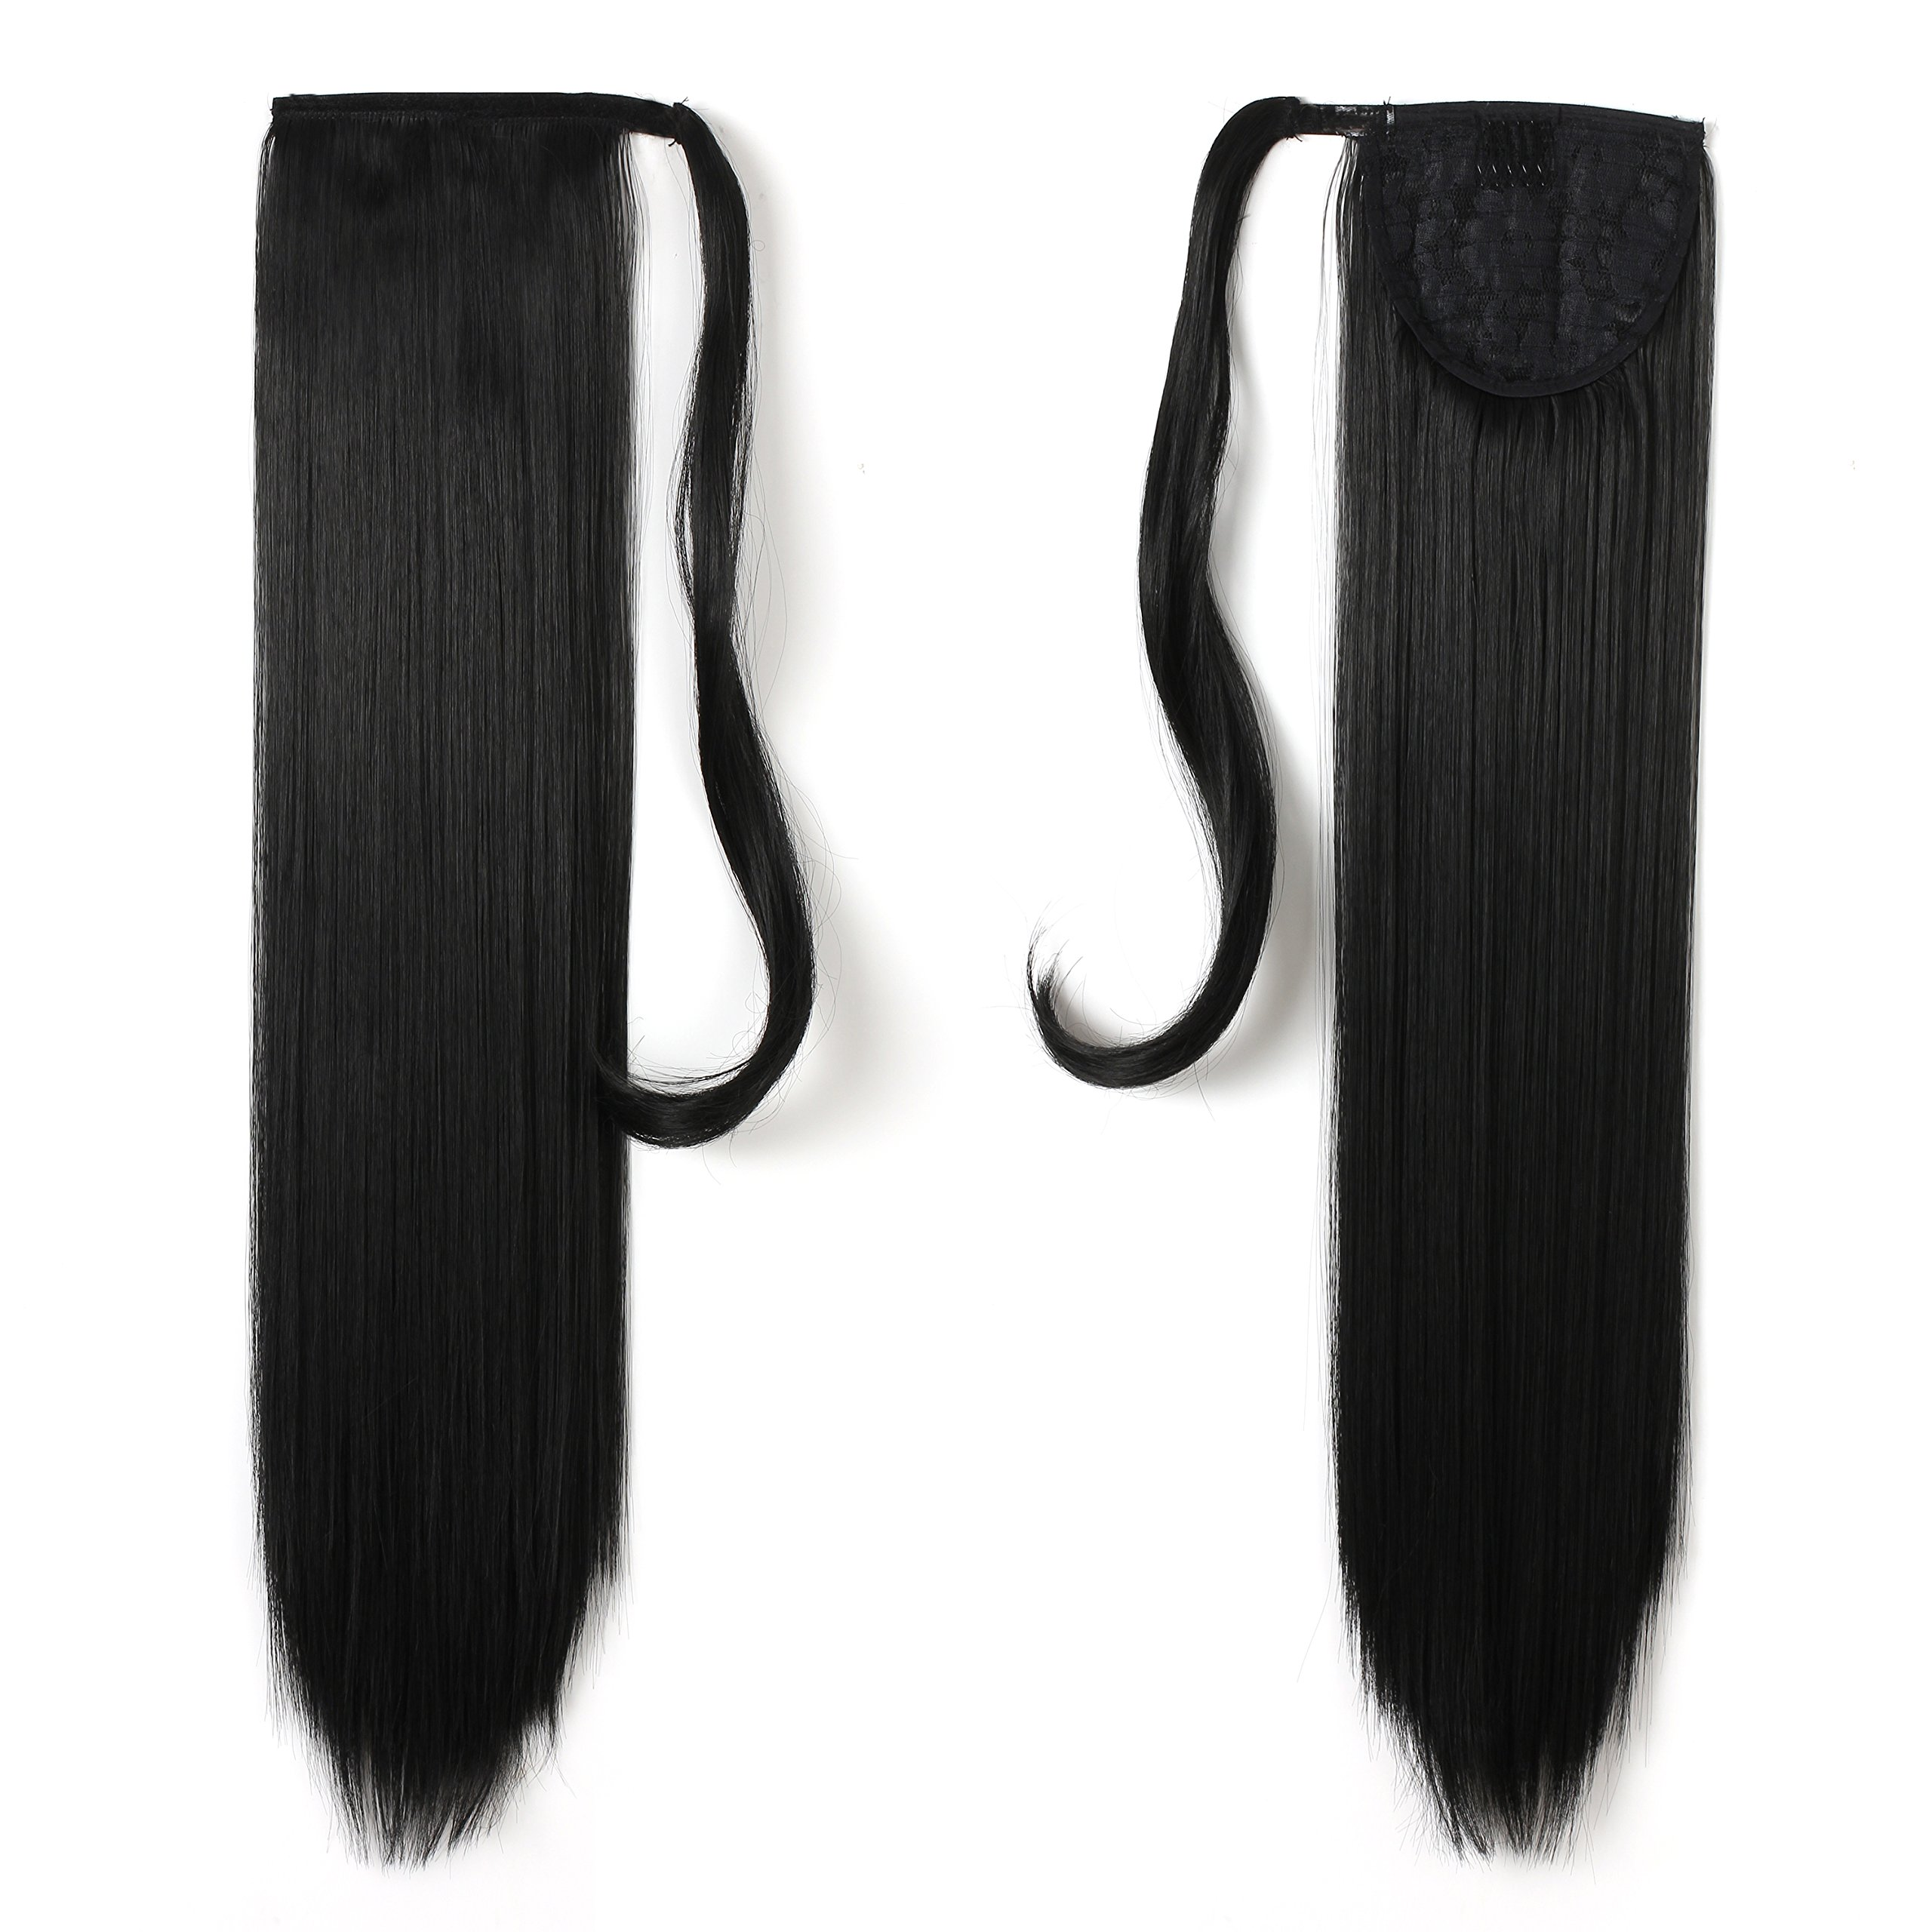 Onedor 24'' Straight Wrap Around Ponytail Extension for Women. Premium Synthetic Fiber 120g-130g (1B# Off Black)